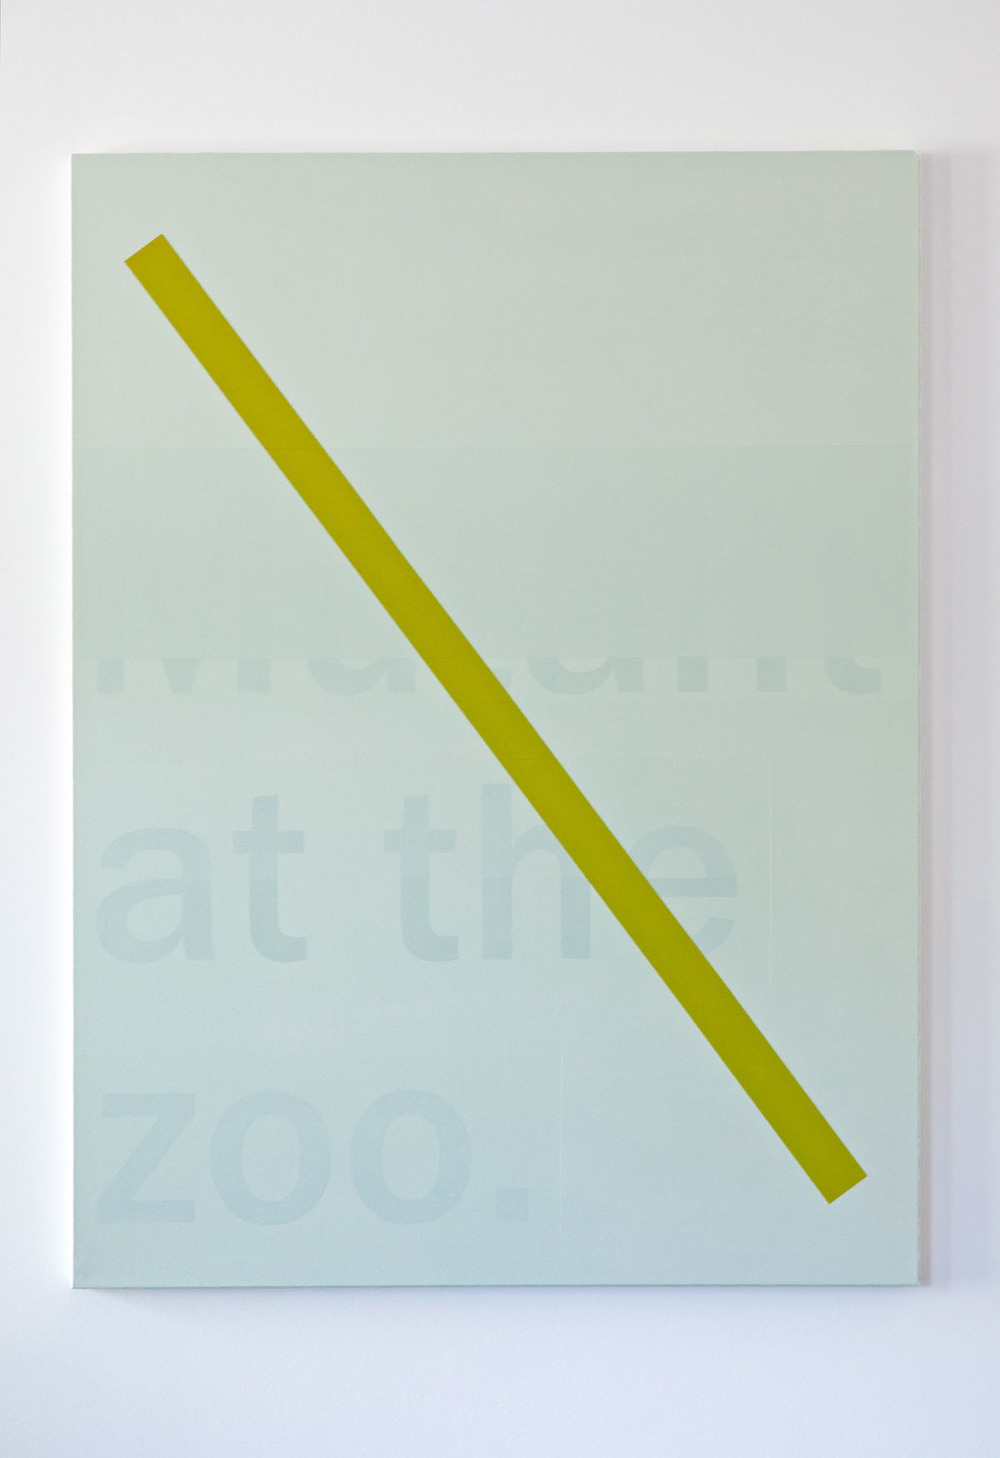 Patrick DeGuira, Mutant at the Zoo, 2012